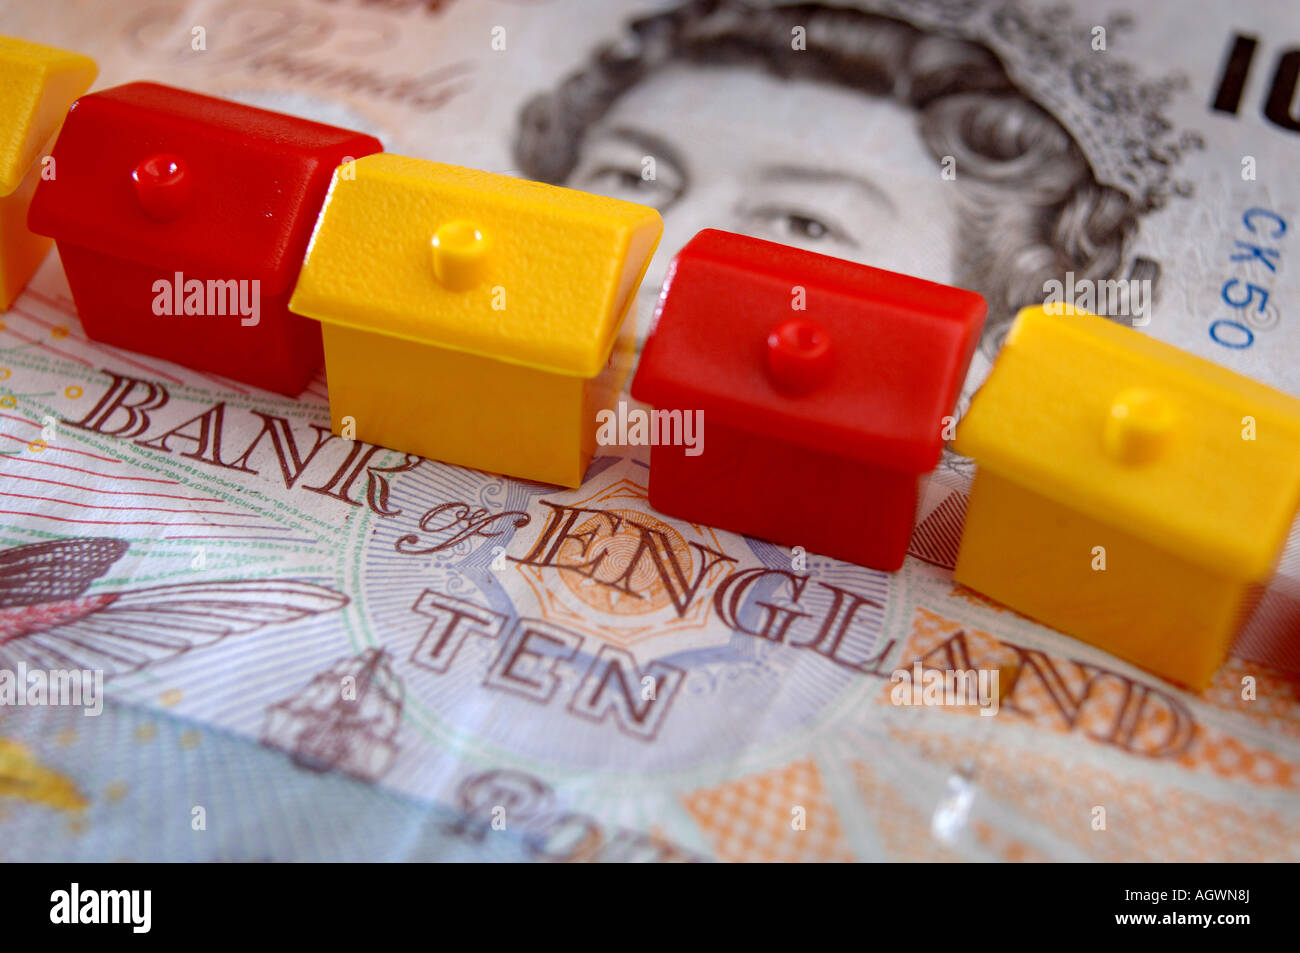 Picture By Jim Wileman 26 09 2007 Generic Bank of England Interest Rate picture - Stock Image